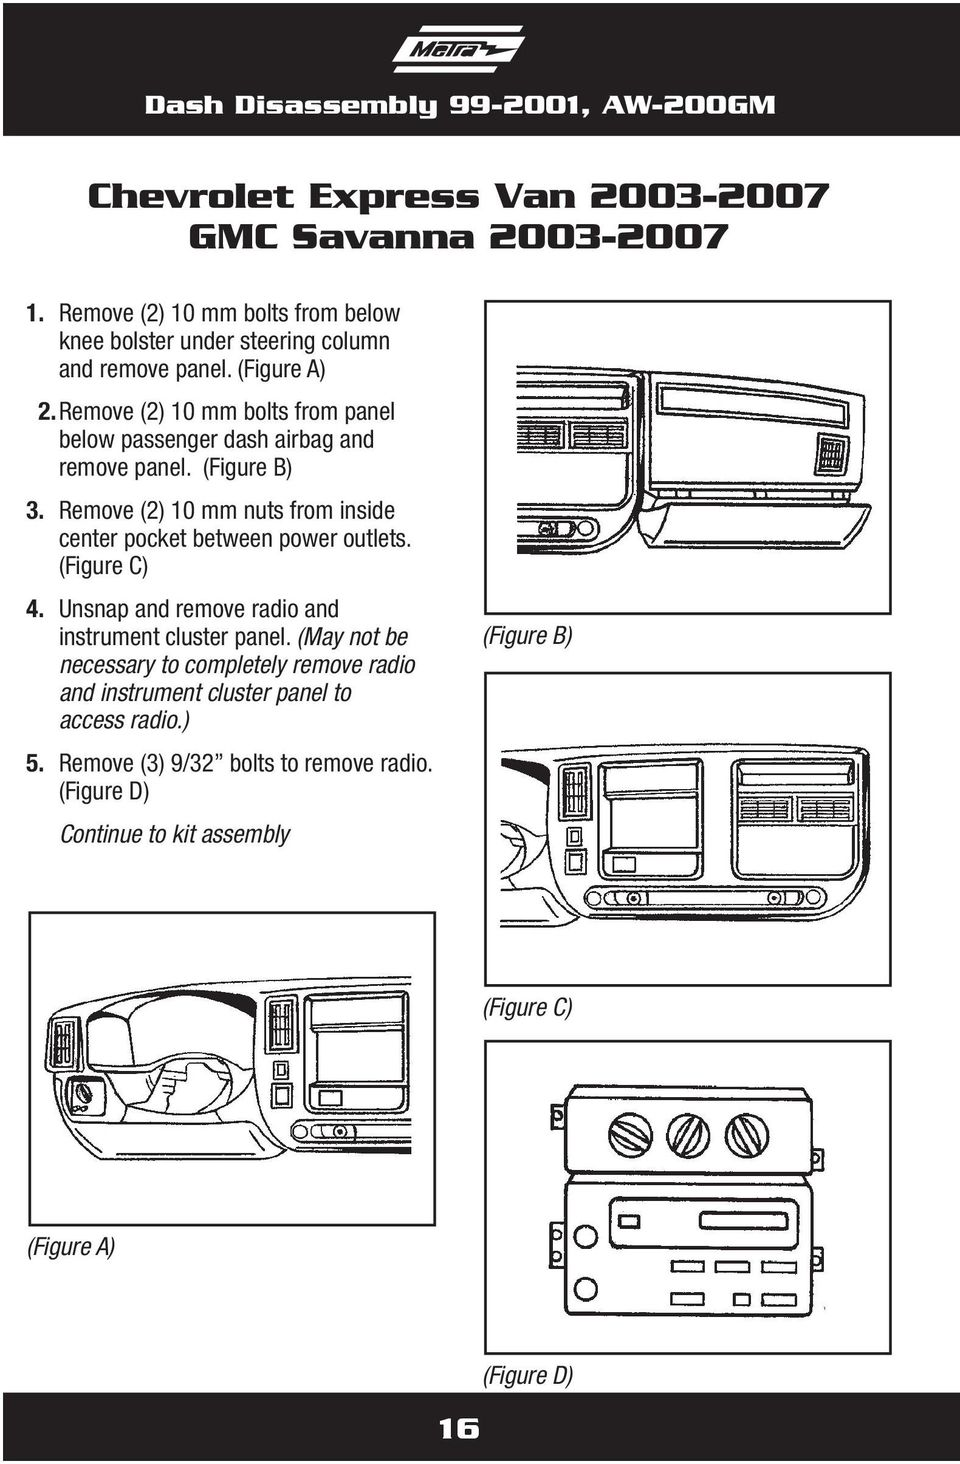 Remove (2) 10 mm nuts from inside center pocket between power outlets. (Figure C) 4. Unsnap and remove radio and instrument cluster panel.